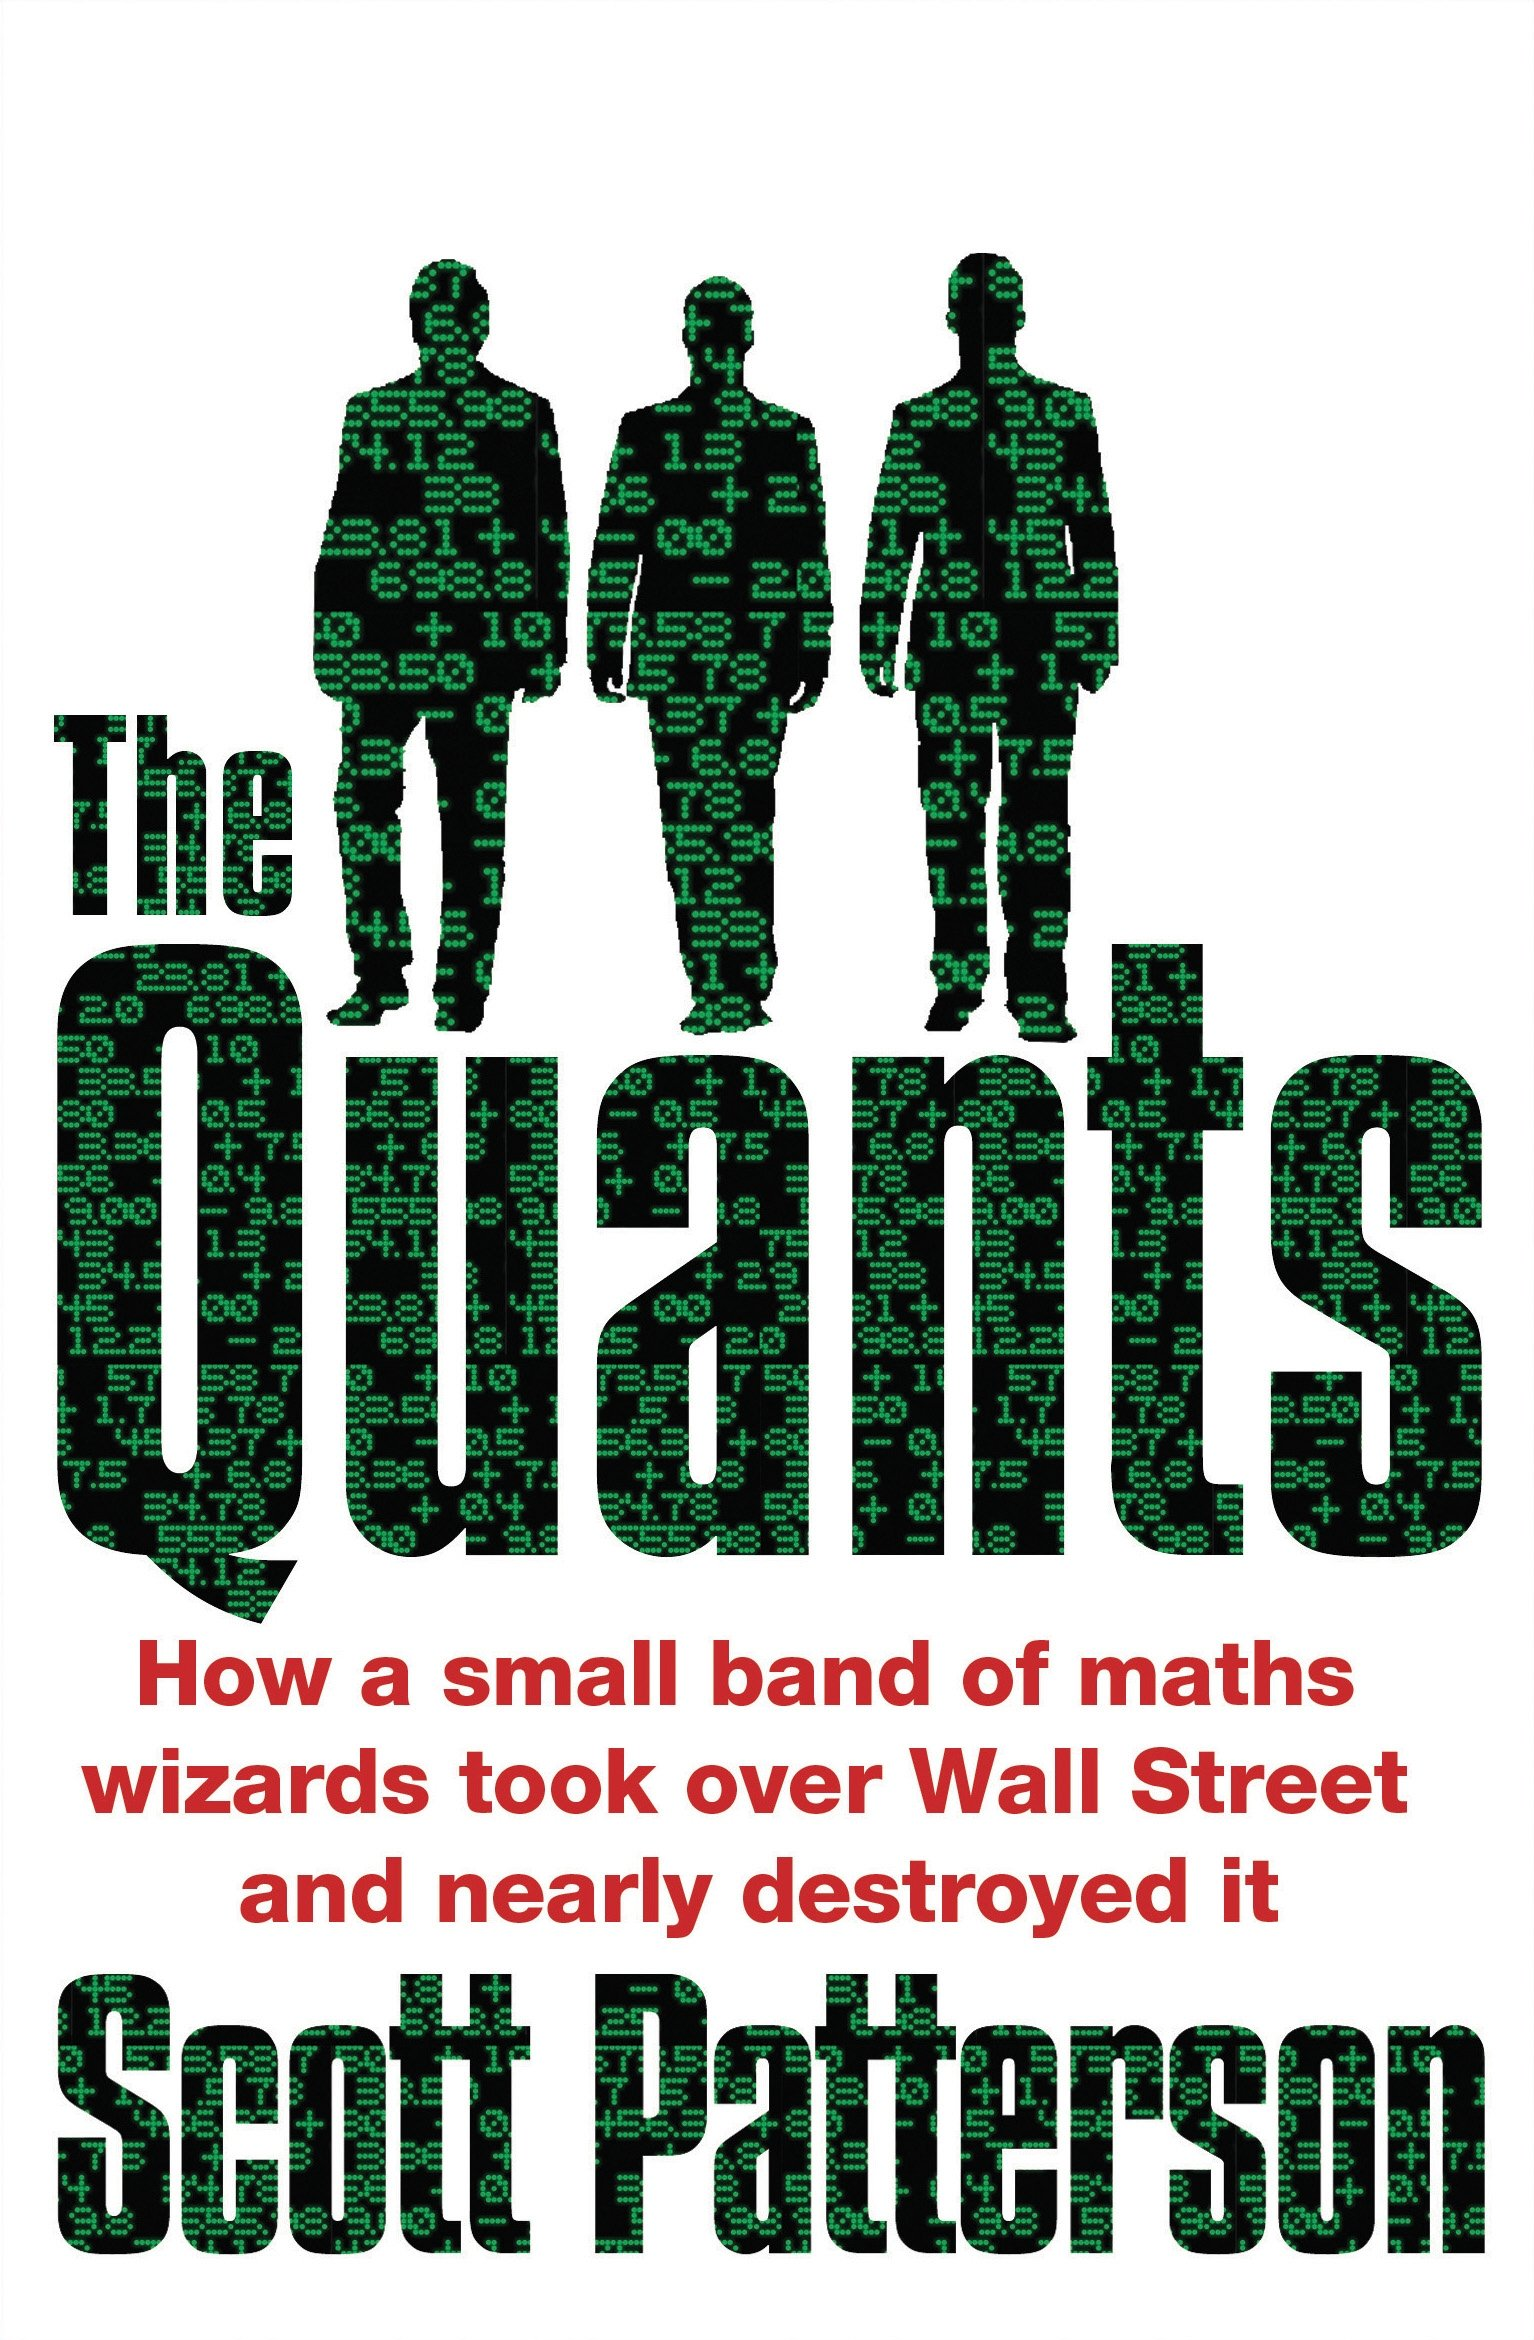 Image OfThe Quants: The Maths Geniuses Who Brought Down Wall Street